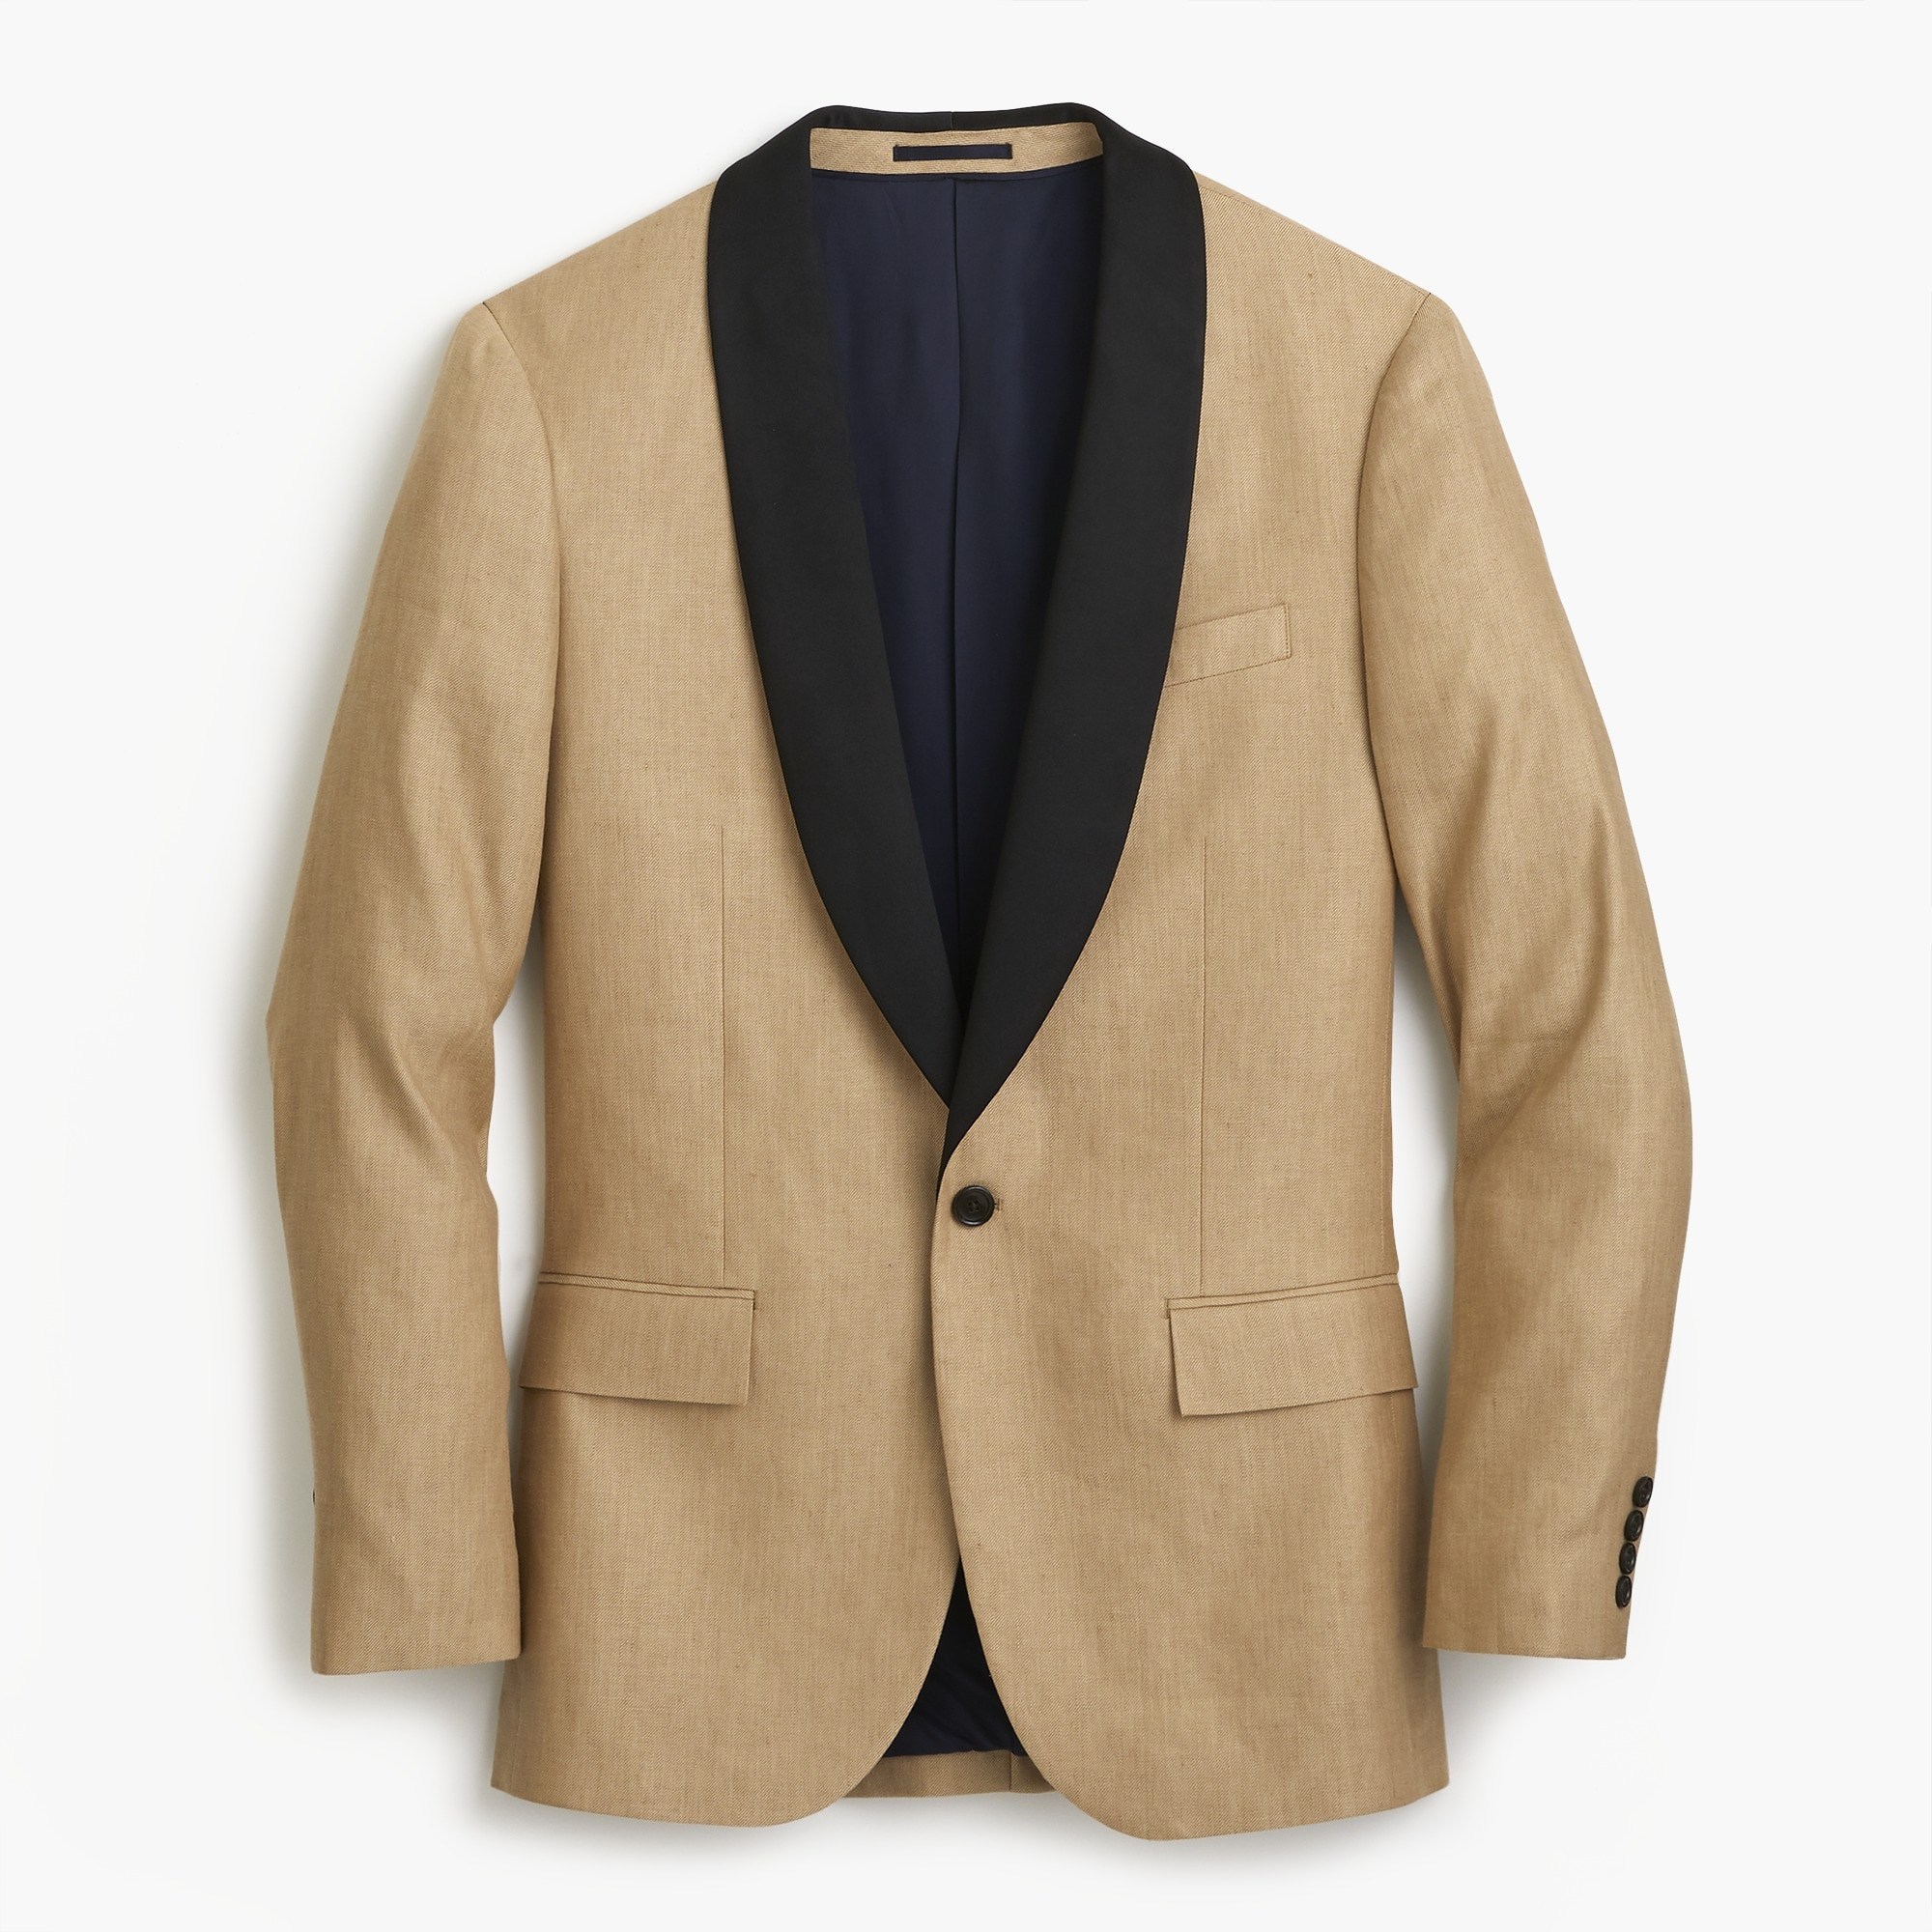 Image 6 for Ludlow Slim-fit shawl-collar tuxedo jacket in linen-silk